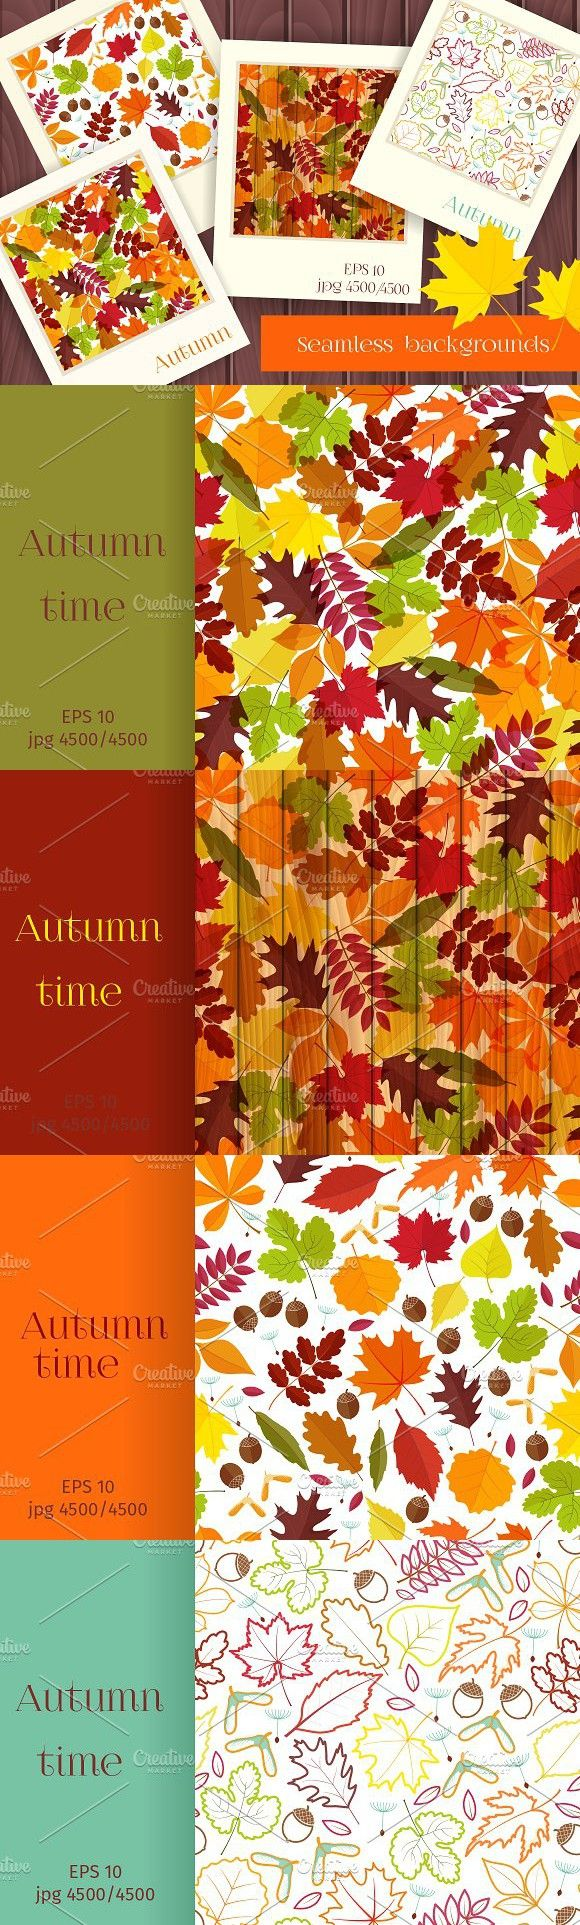 Autumn time seamless backgrounds. Patterns